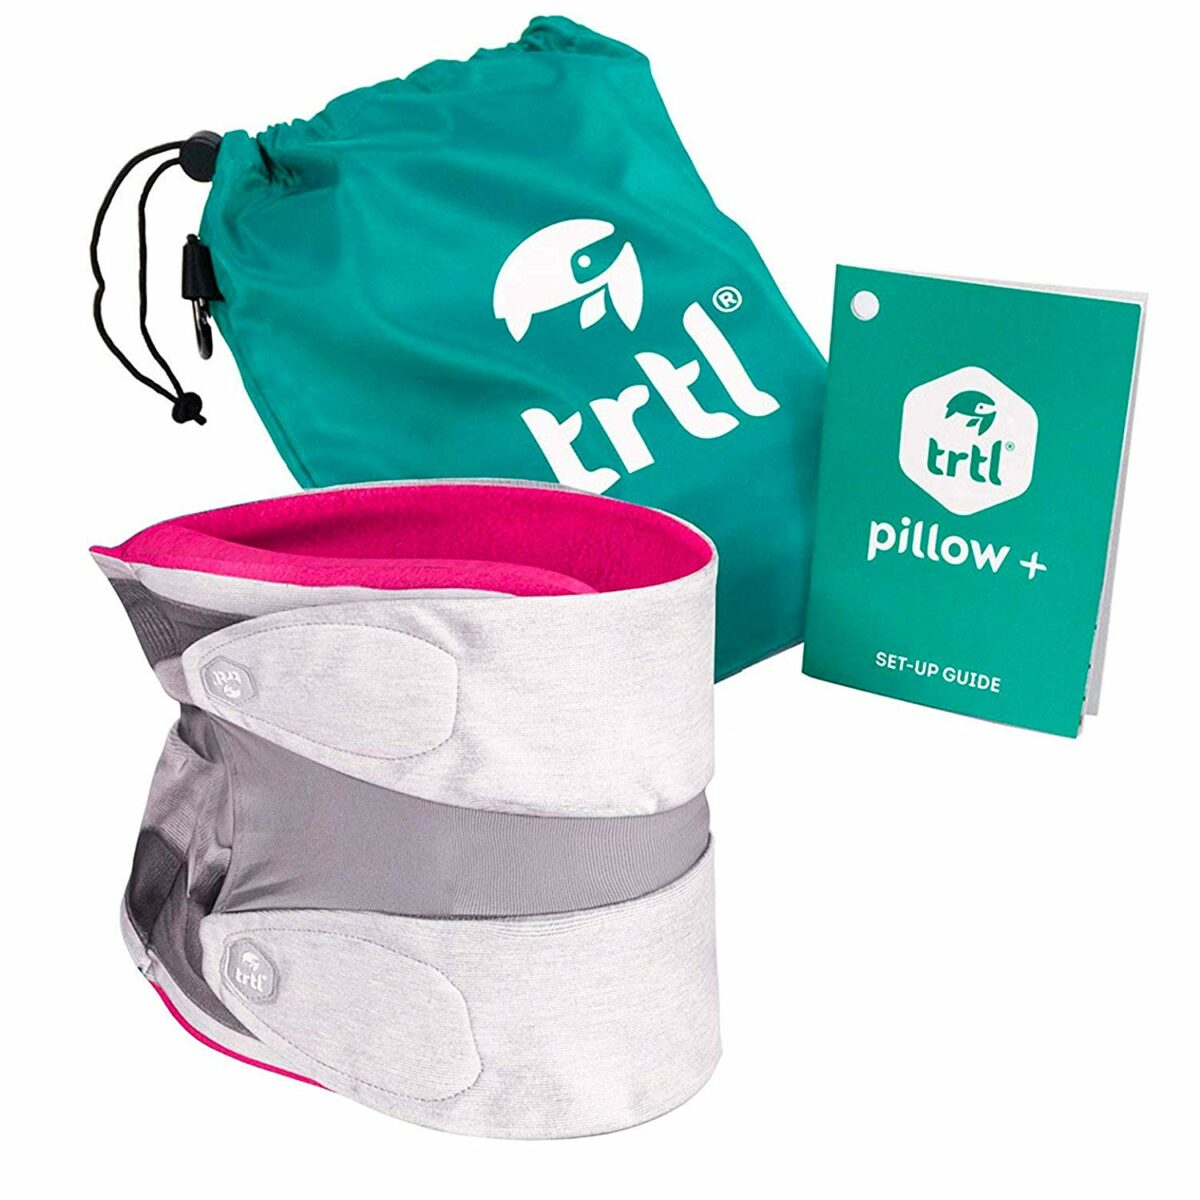 trtl travel pillow plus